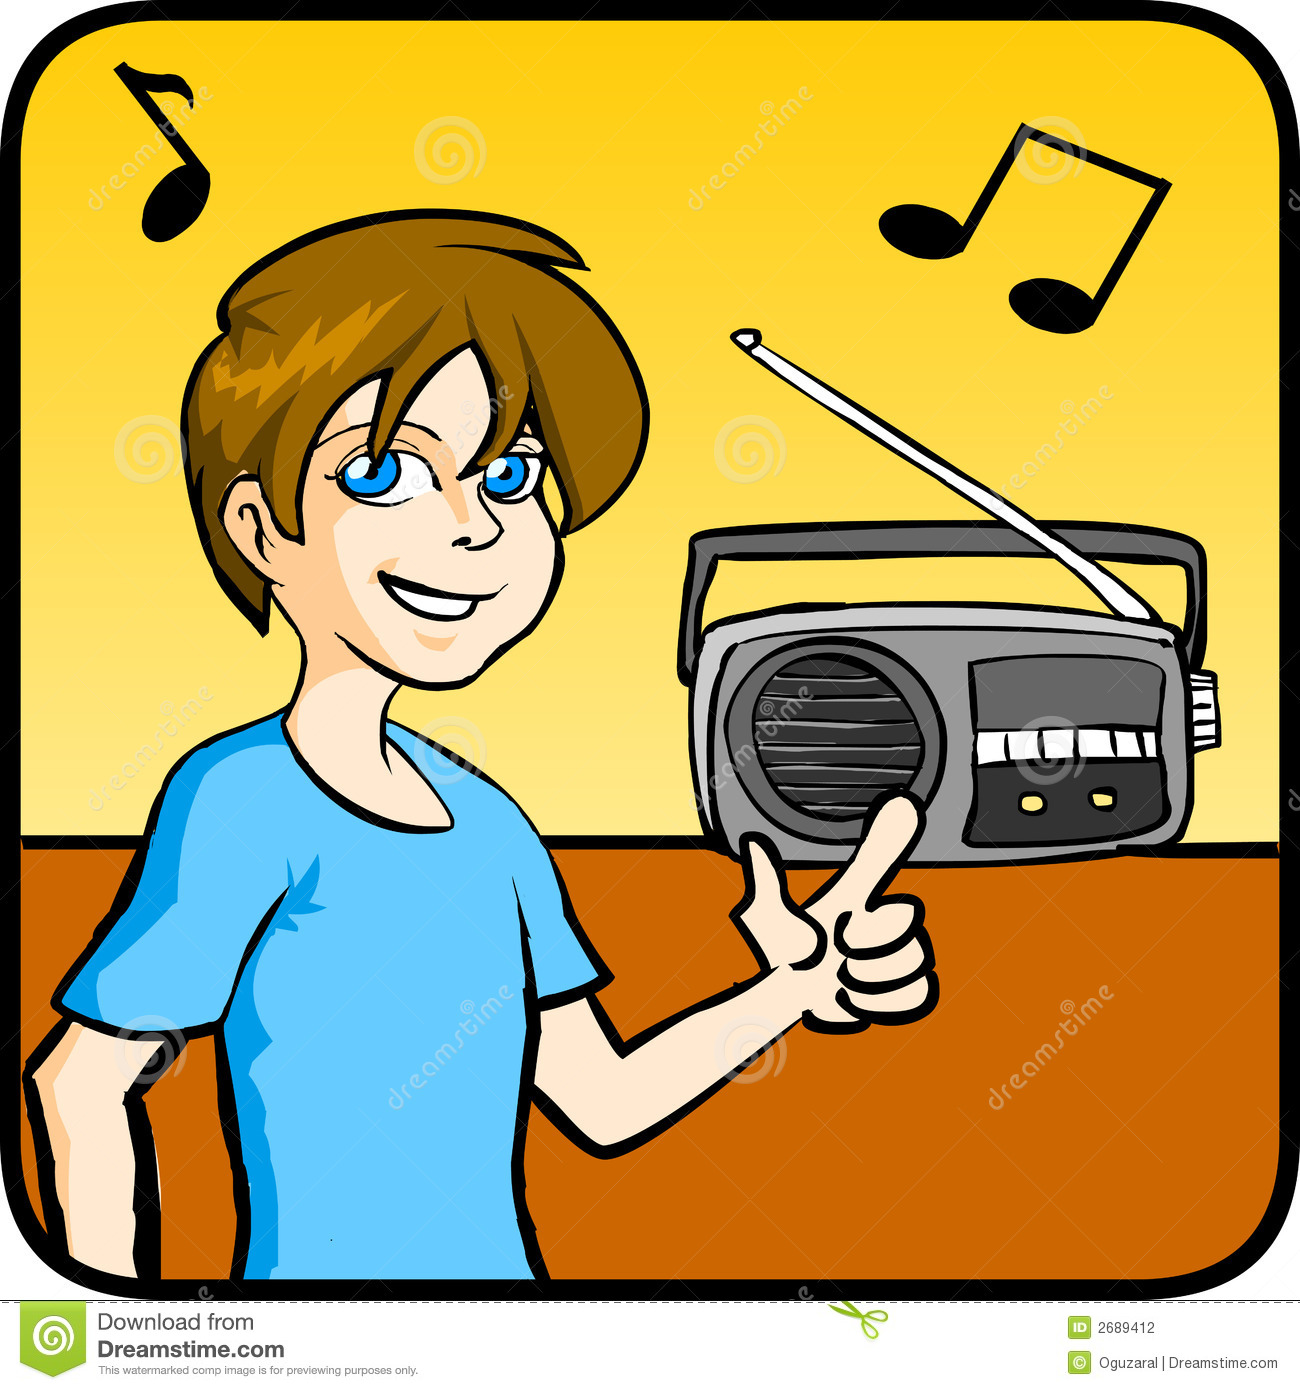 Listen Listening to Music Clipart